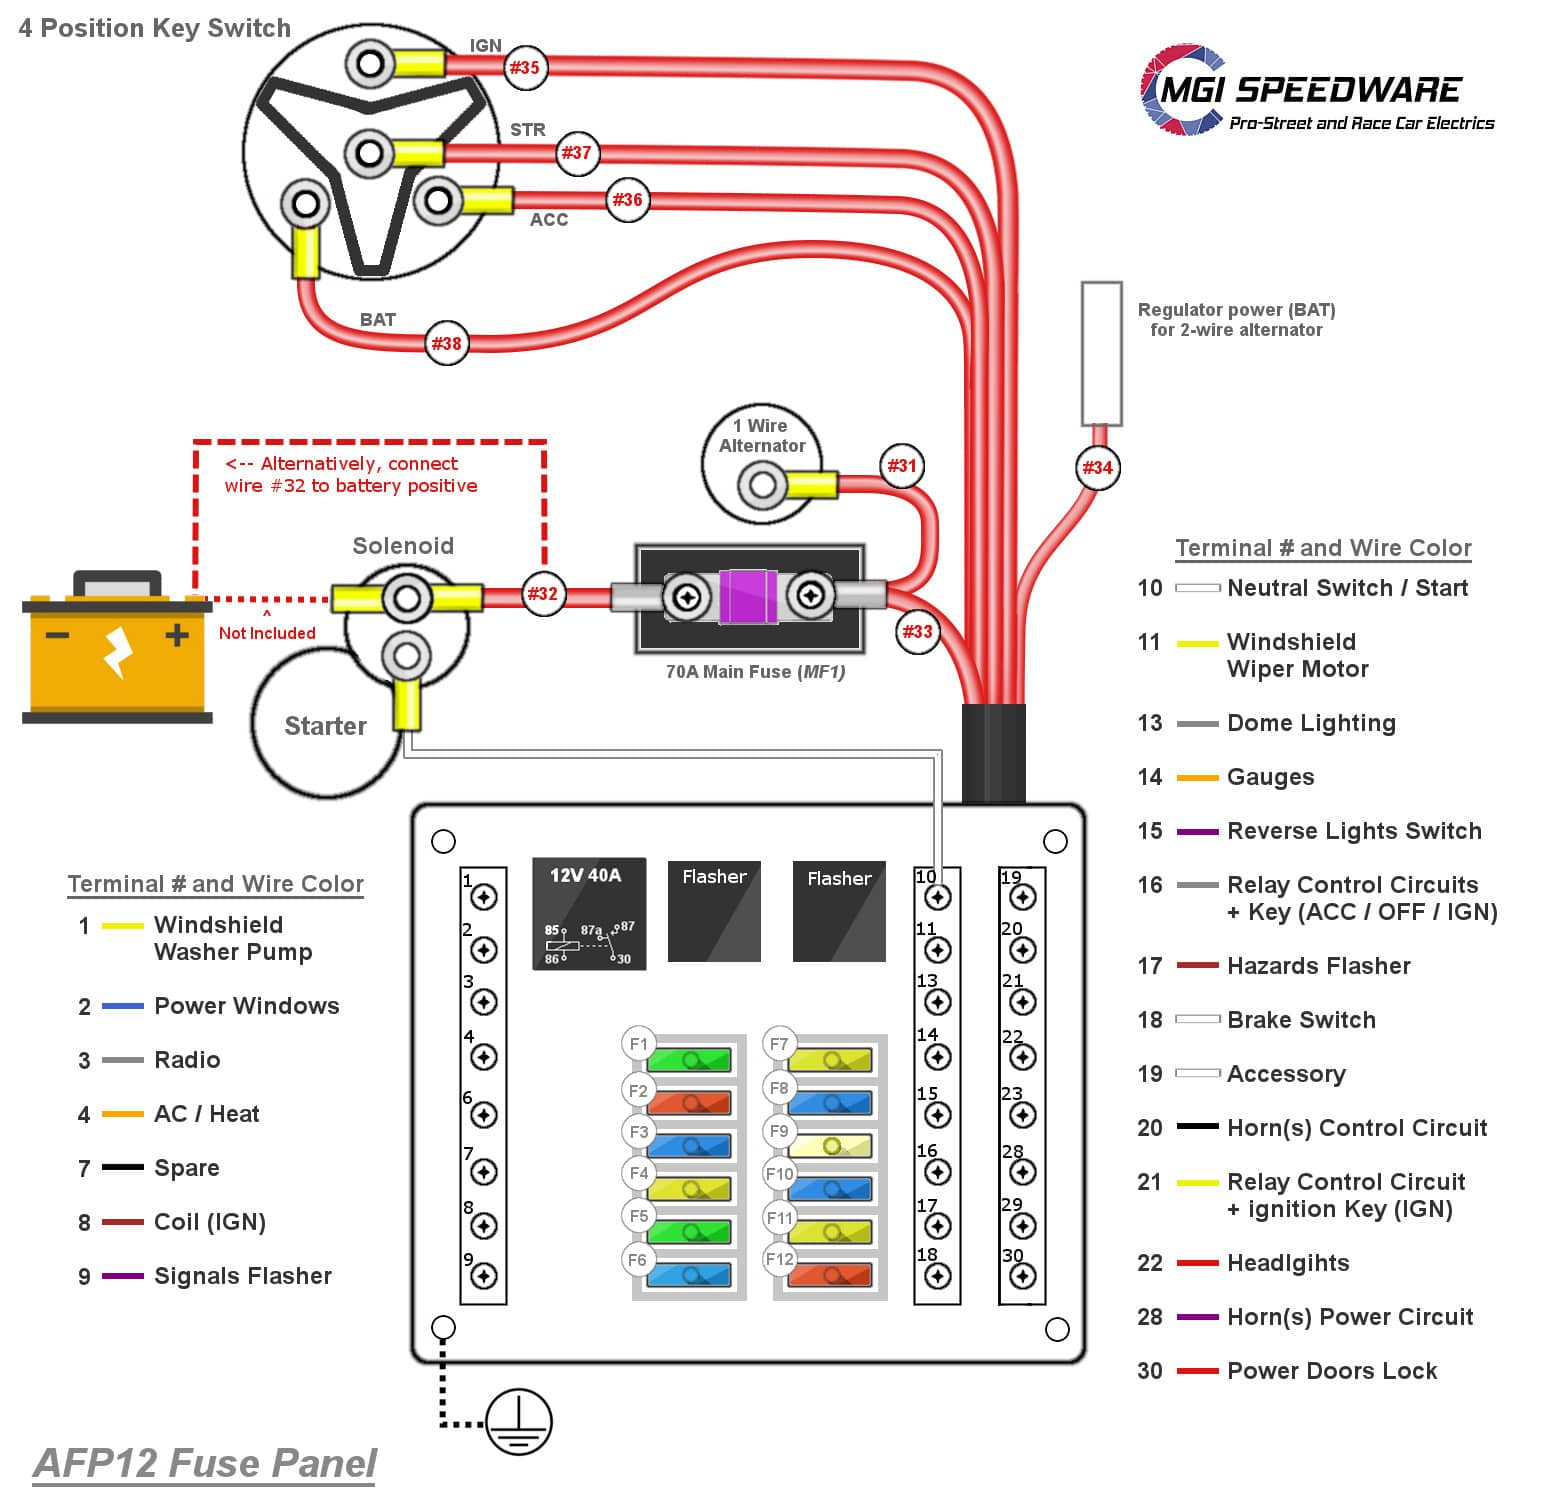 1997 grand prix se fuse box wiring diagram gmg fuse box wiring diagram